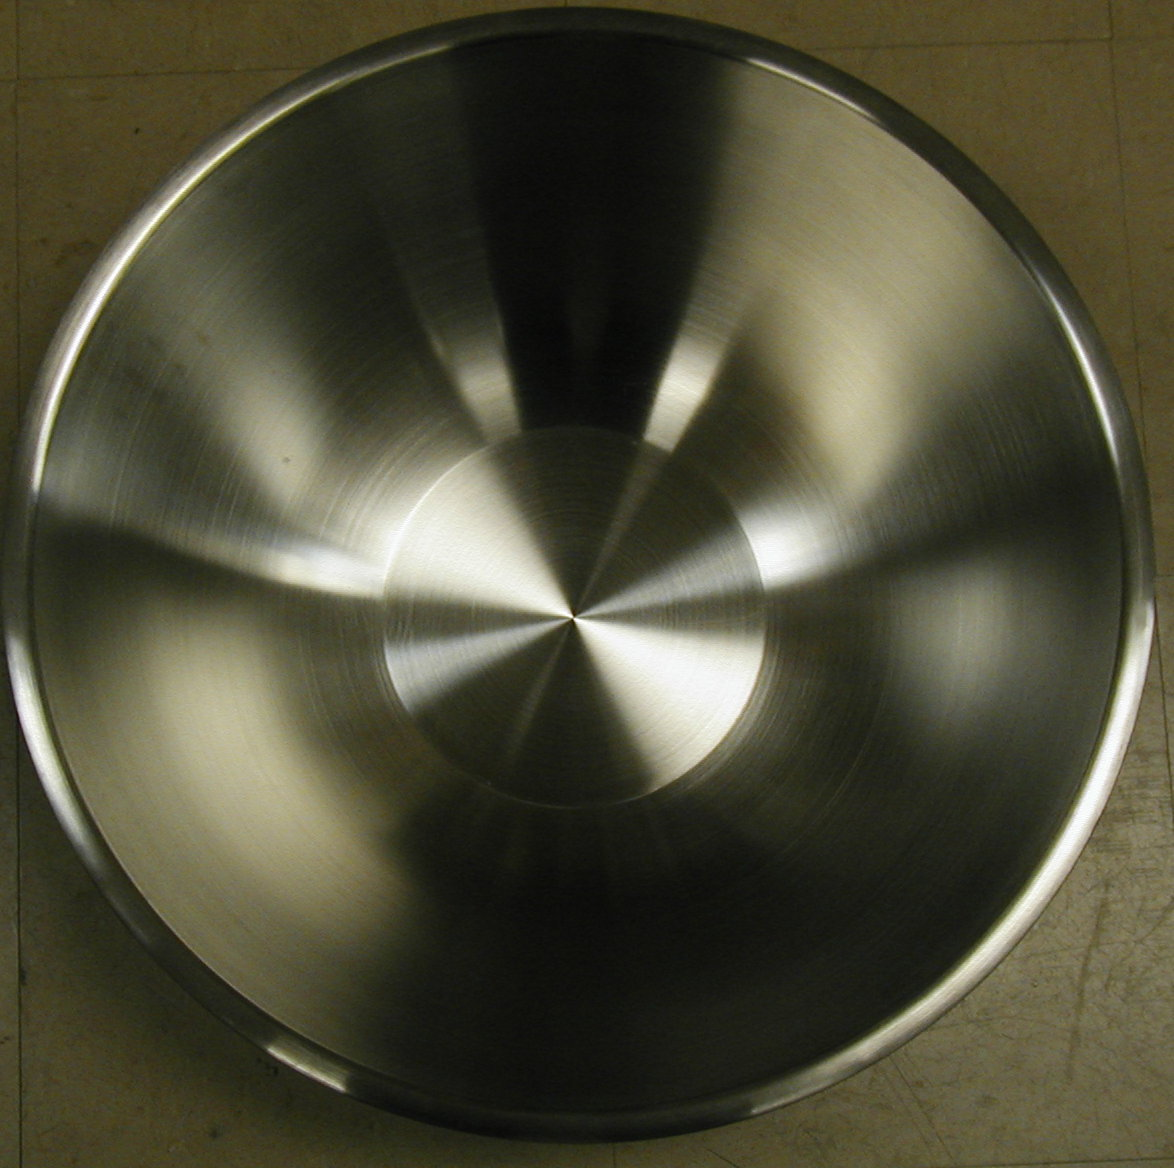 Large Stainless Steel Mixing Bowls Temecula Ca